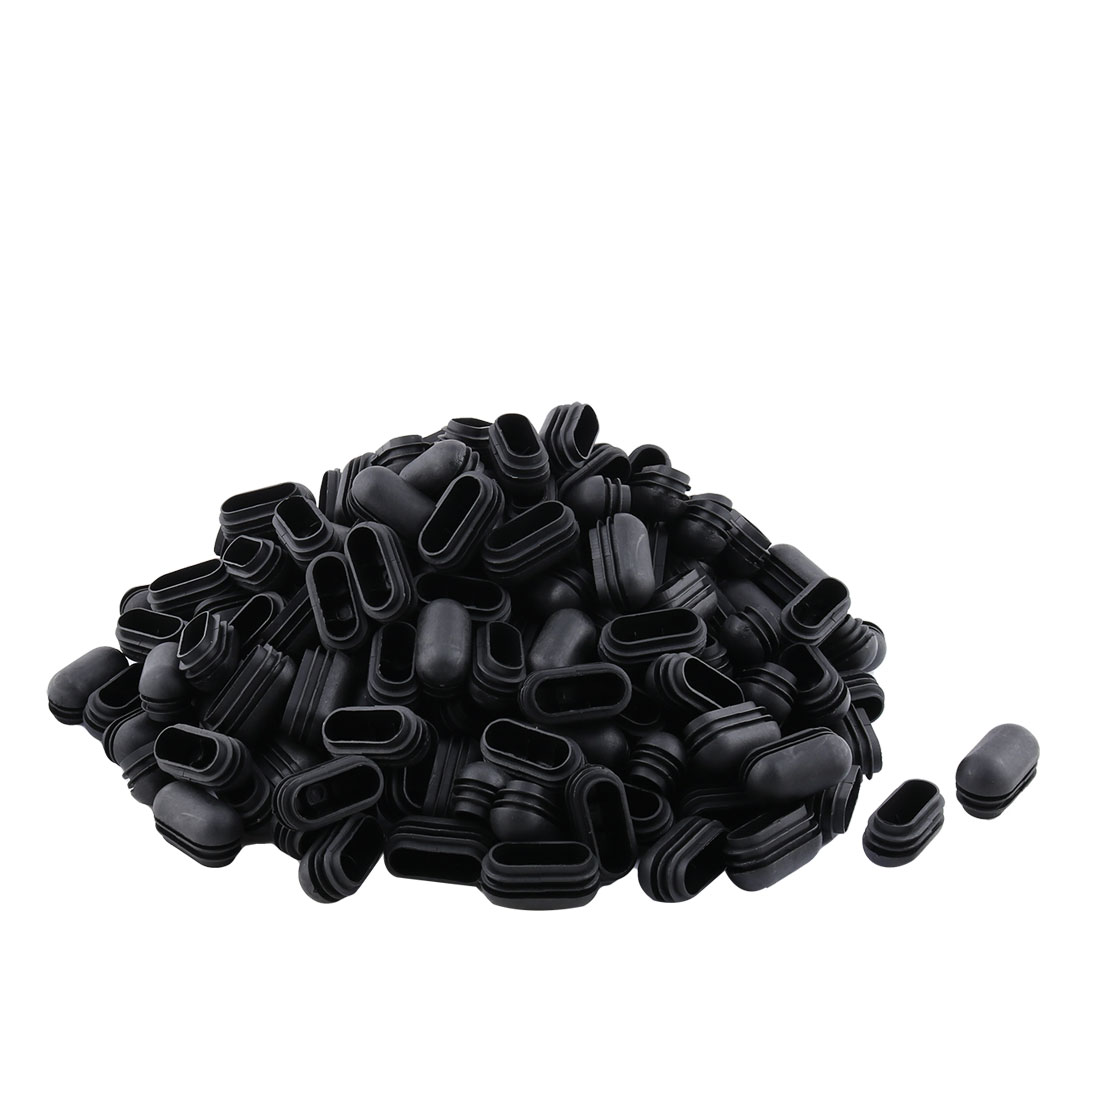 Furniture Plastic Oval Bench Feet Blanking Cap Tube Insert Black 24mm x 49mm 200pcs